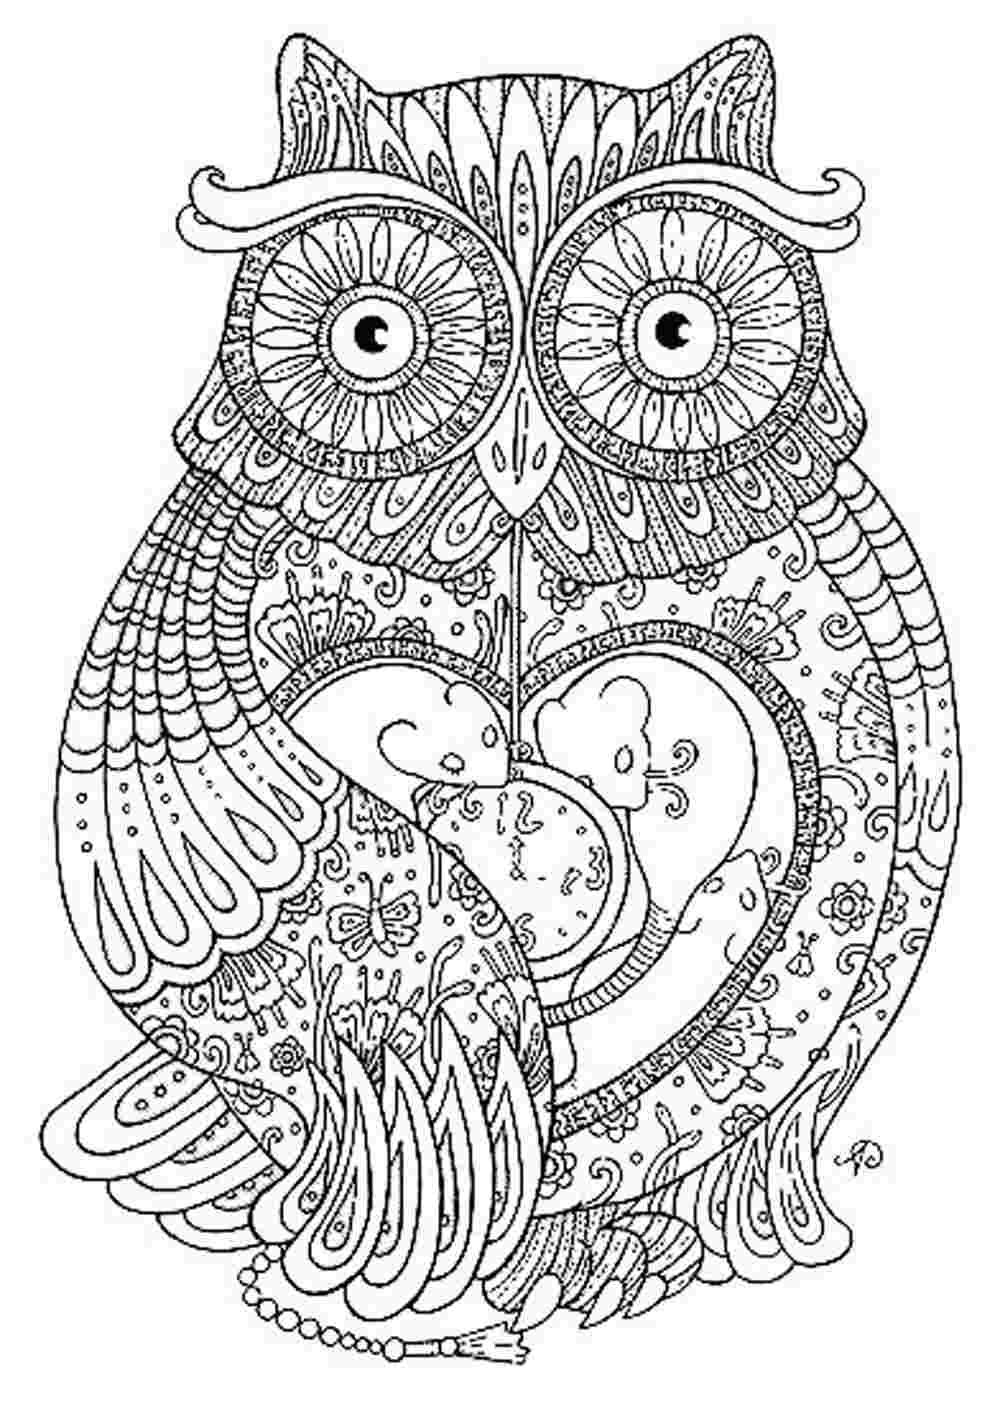 On online owl coloring pages - Get The Latest Free Owl Coloring Pages For Adults Images Favorite Coloring Pages To Print Online